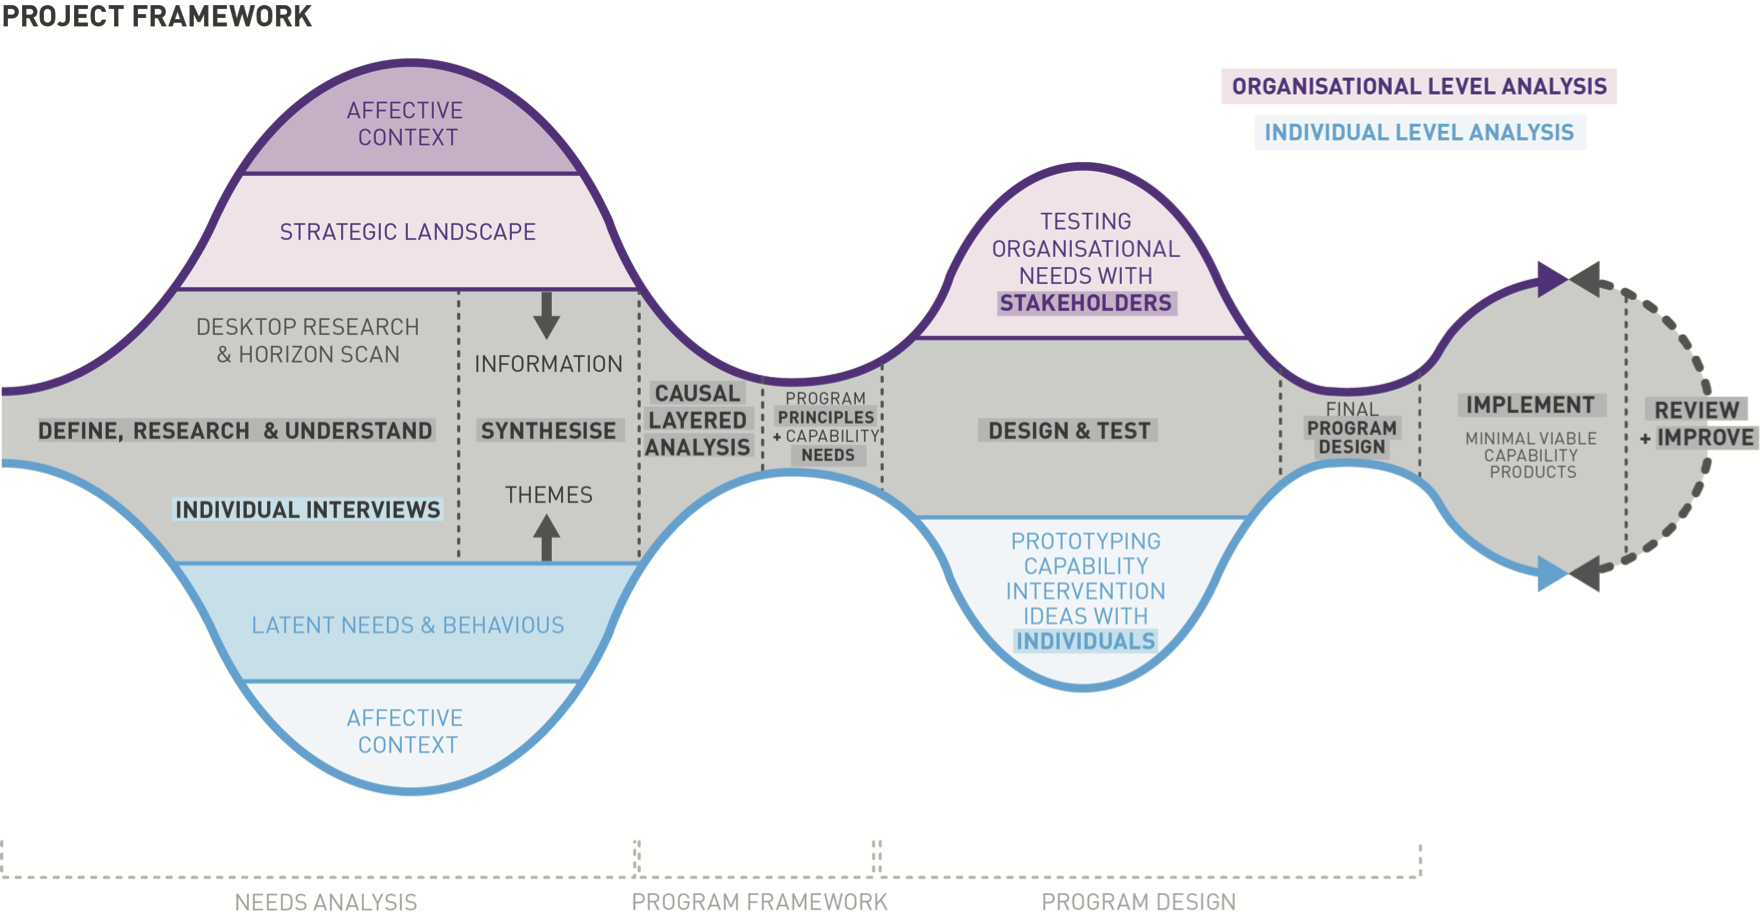 Project Framework FINAL UPDATED.png